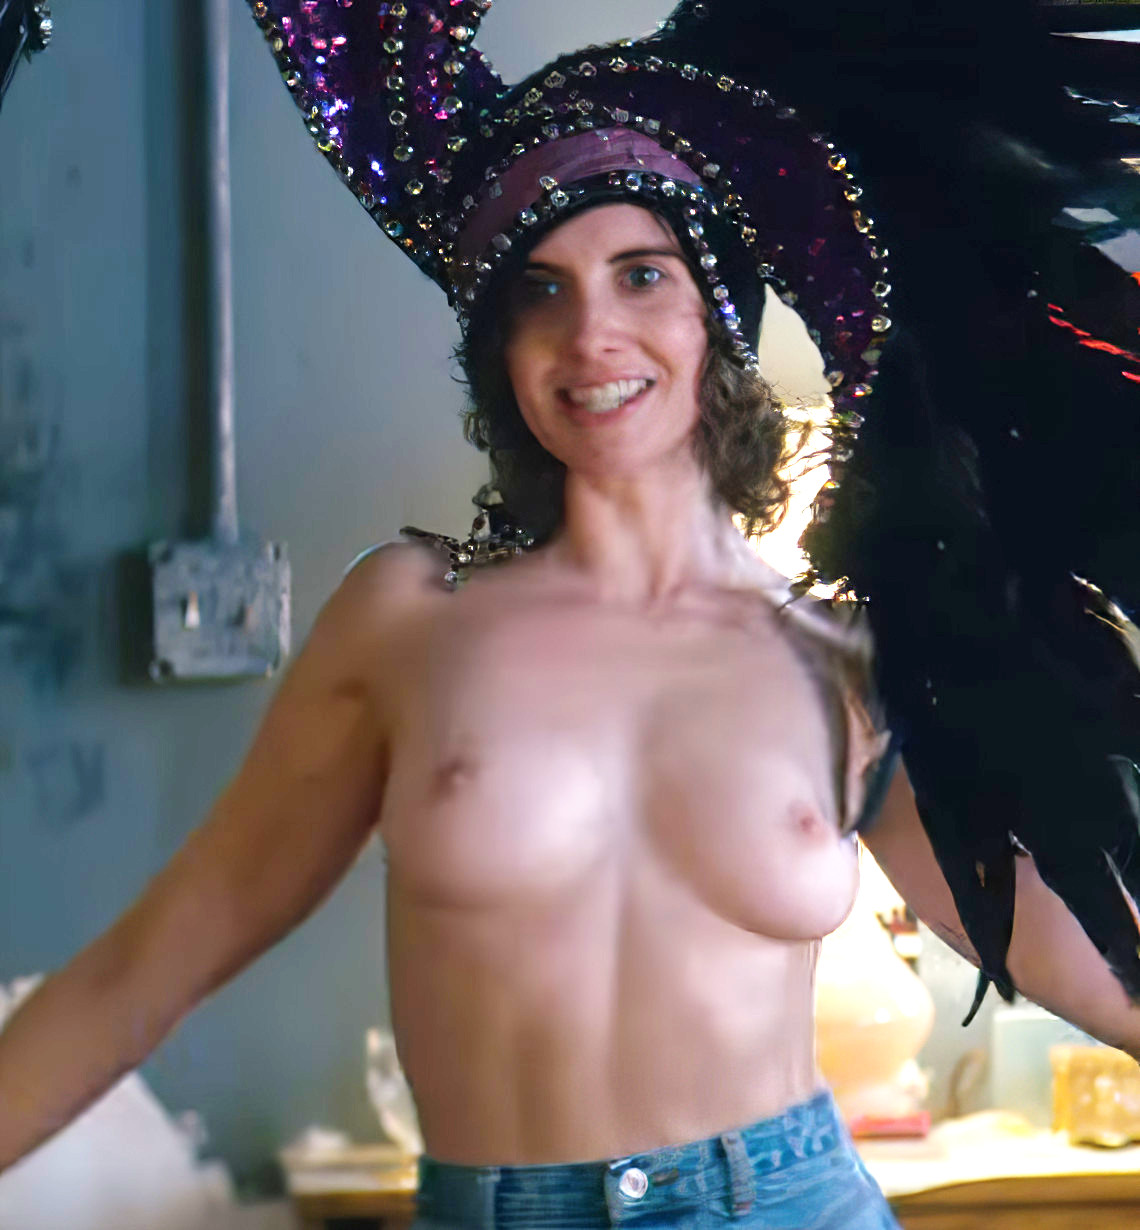 Alison Brie Topless In Glow photo 5